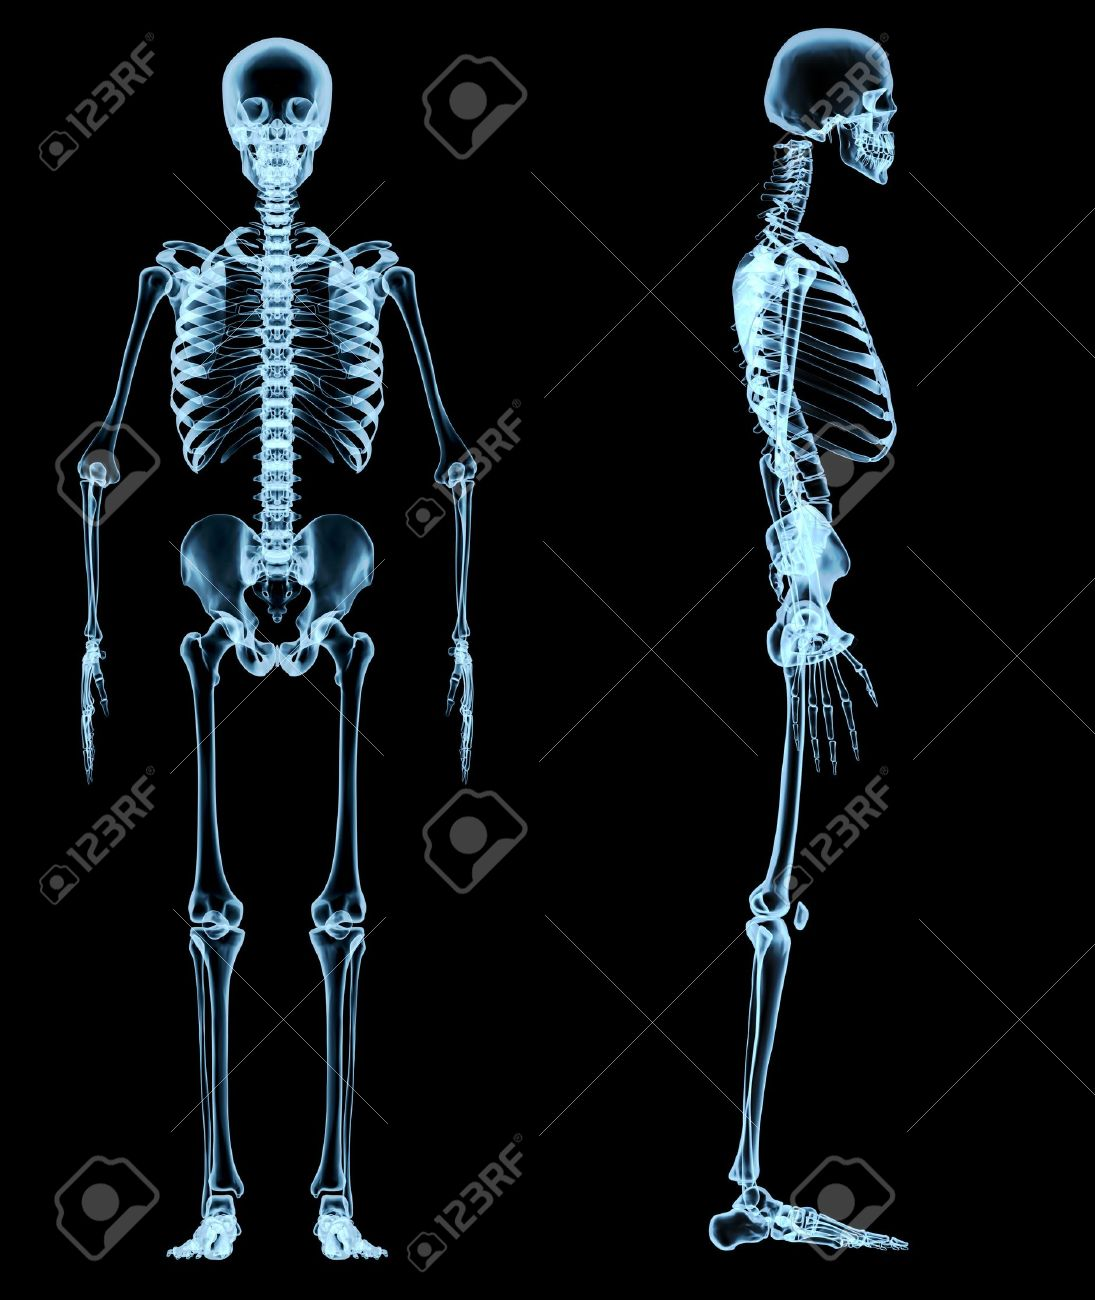 human skeleton under the x-rays stock photo, picture and royalty, Skeleton